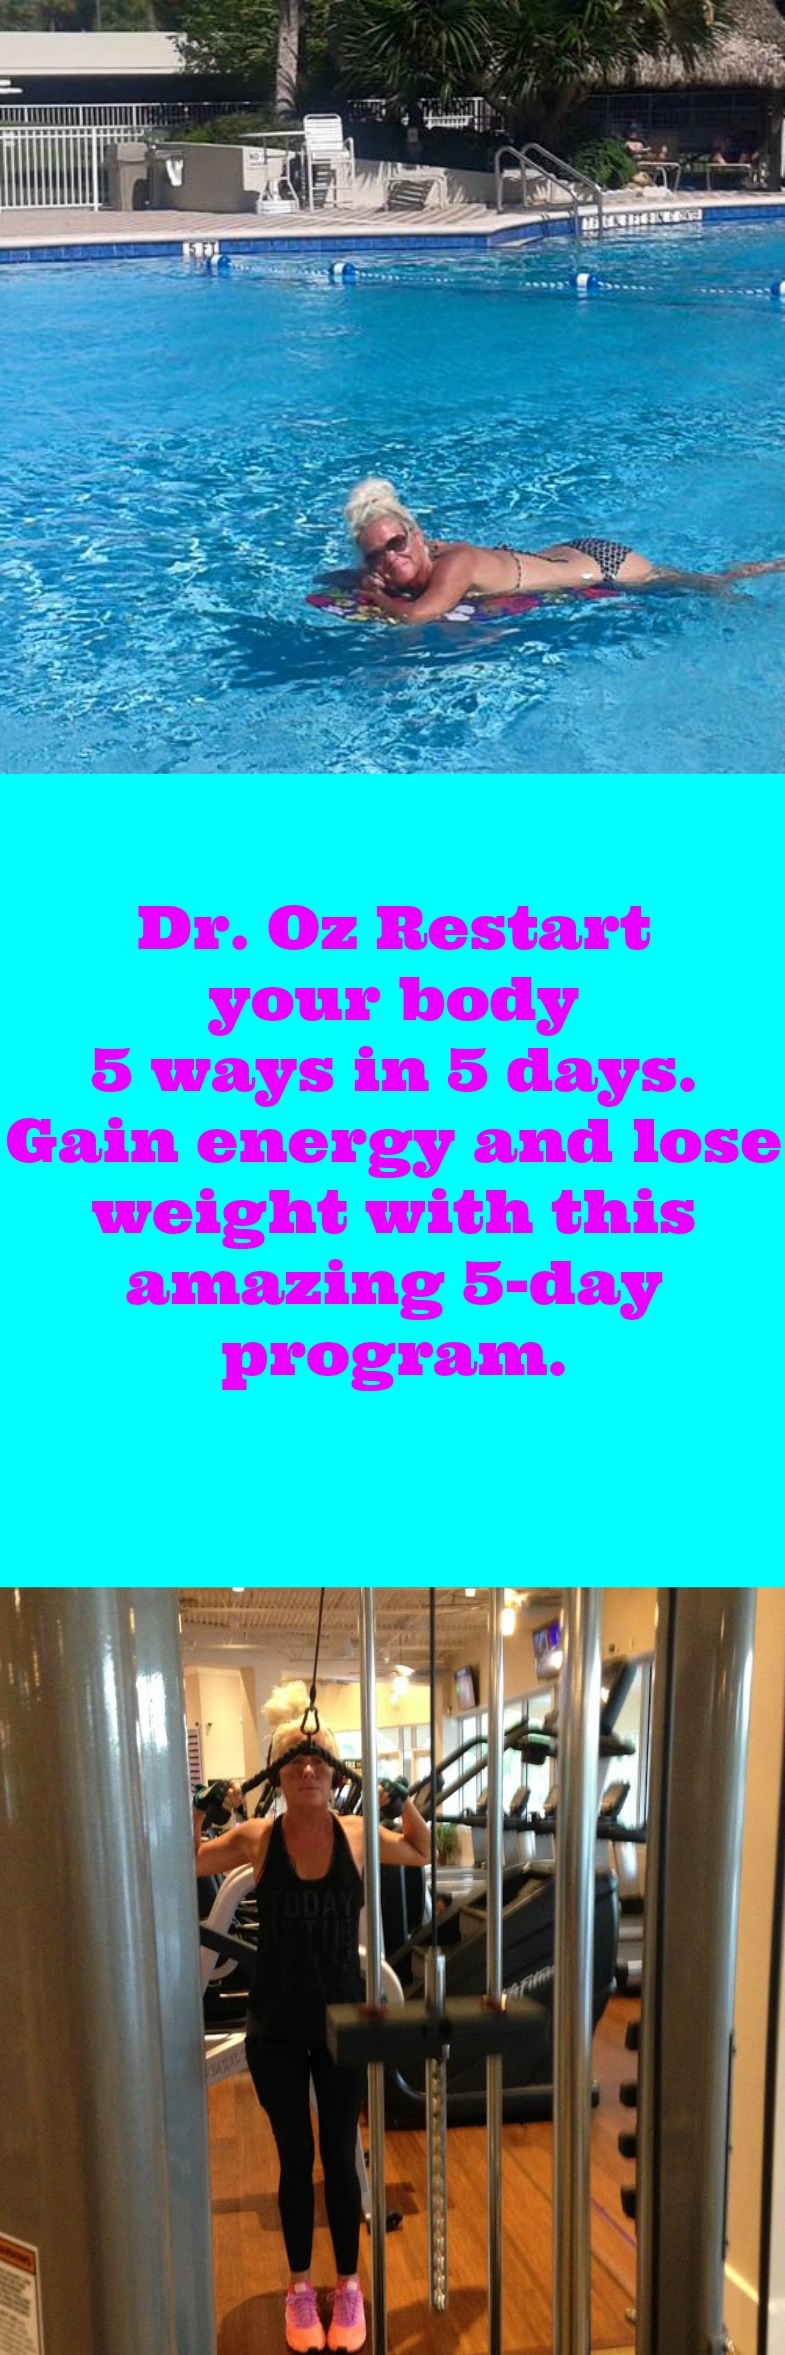 You'll want to Jumpstart your healthy goals this year with Dr. Oz Restart your body 5 ways in 5 days. Gain energy and lose weight with this amazing 5-day program. You will see rapid weight loss, lose belly fat with this healthy lifestyle recipe for weightloss.